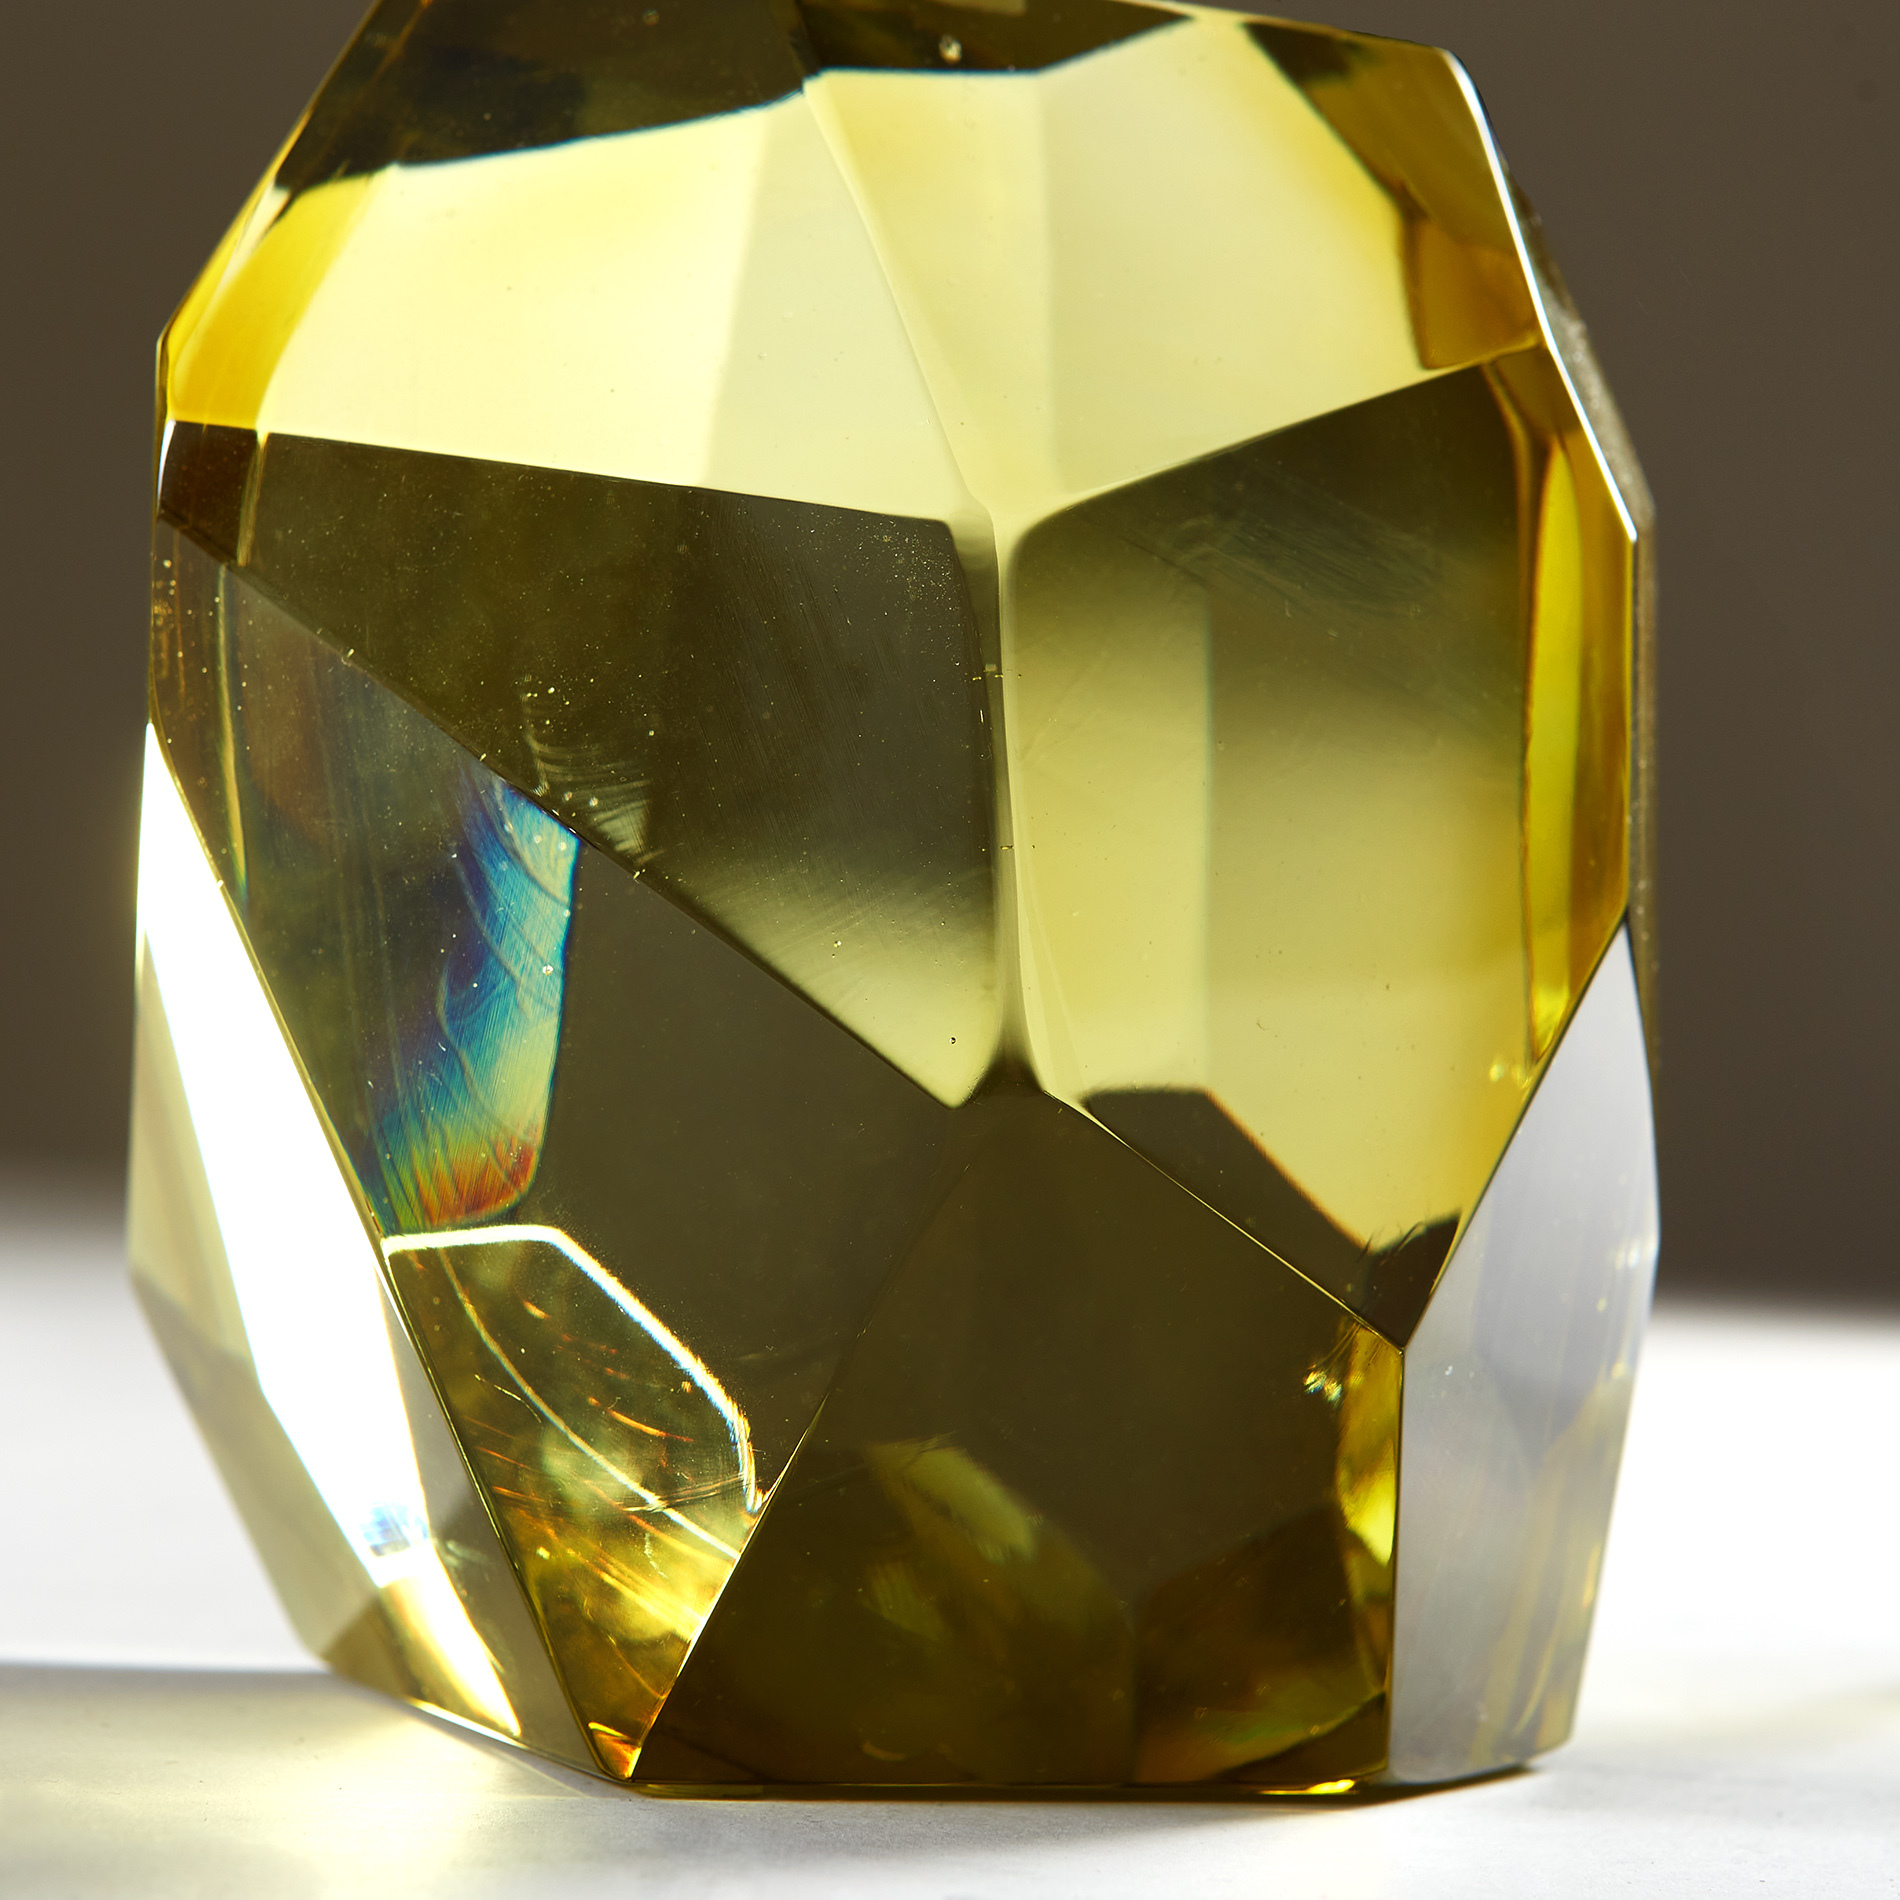 The image for Citrine Yellow Rock Lamp 20210225 Valerie Wade 2 241 V1